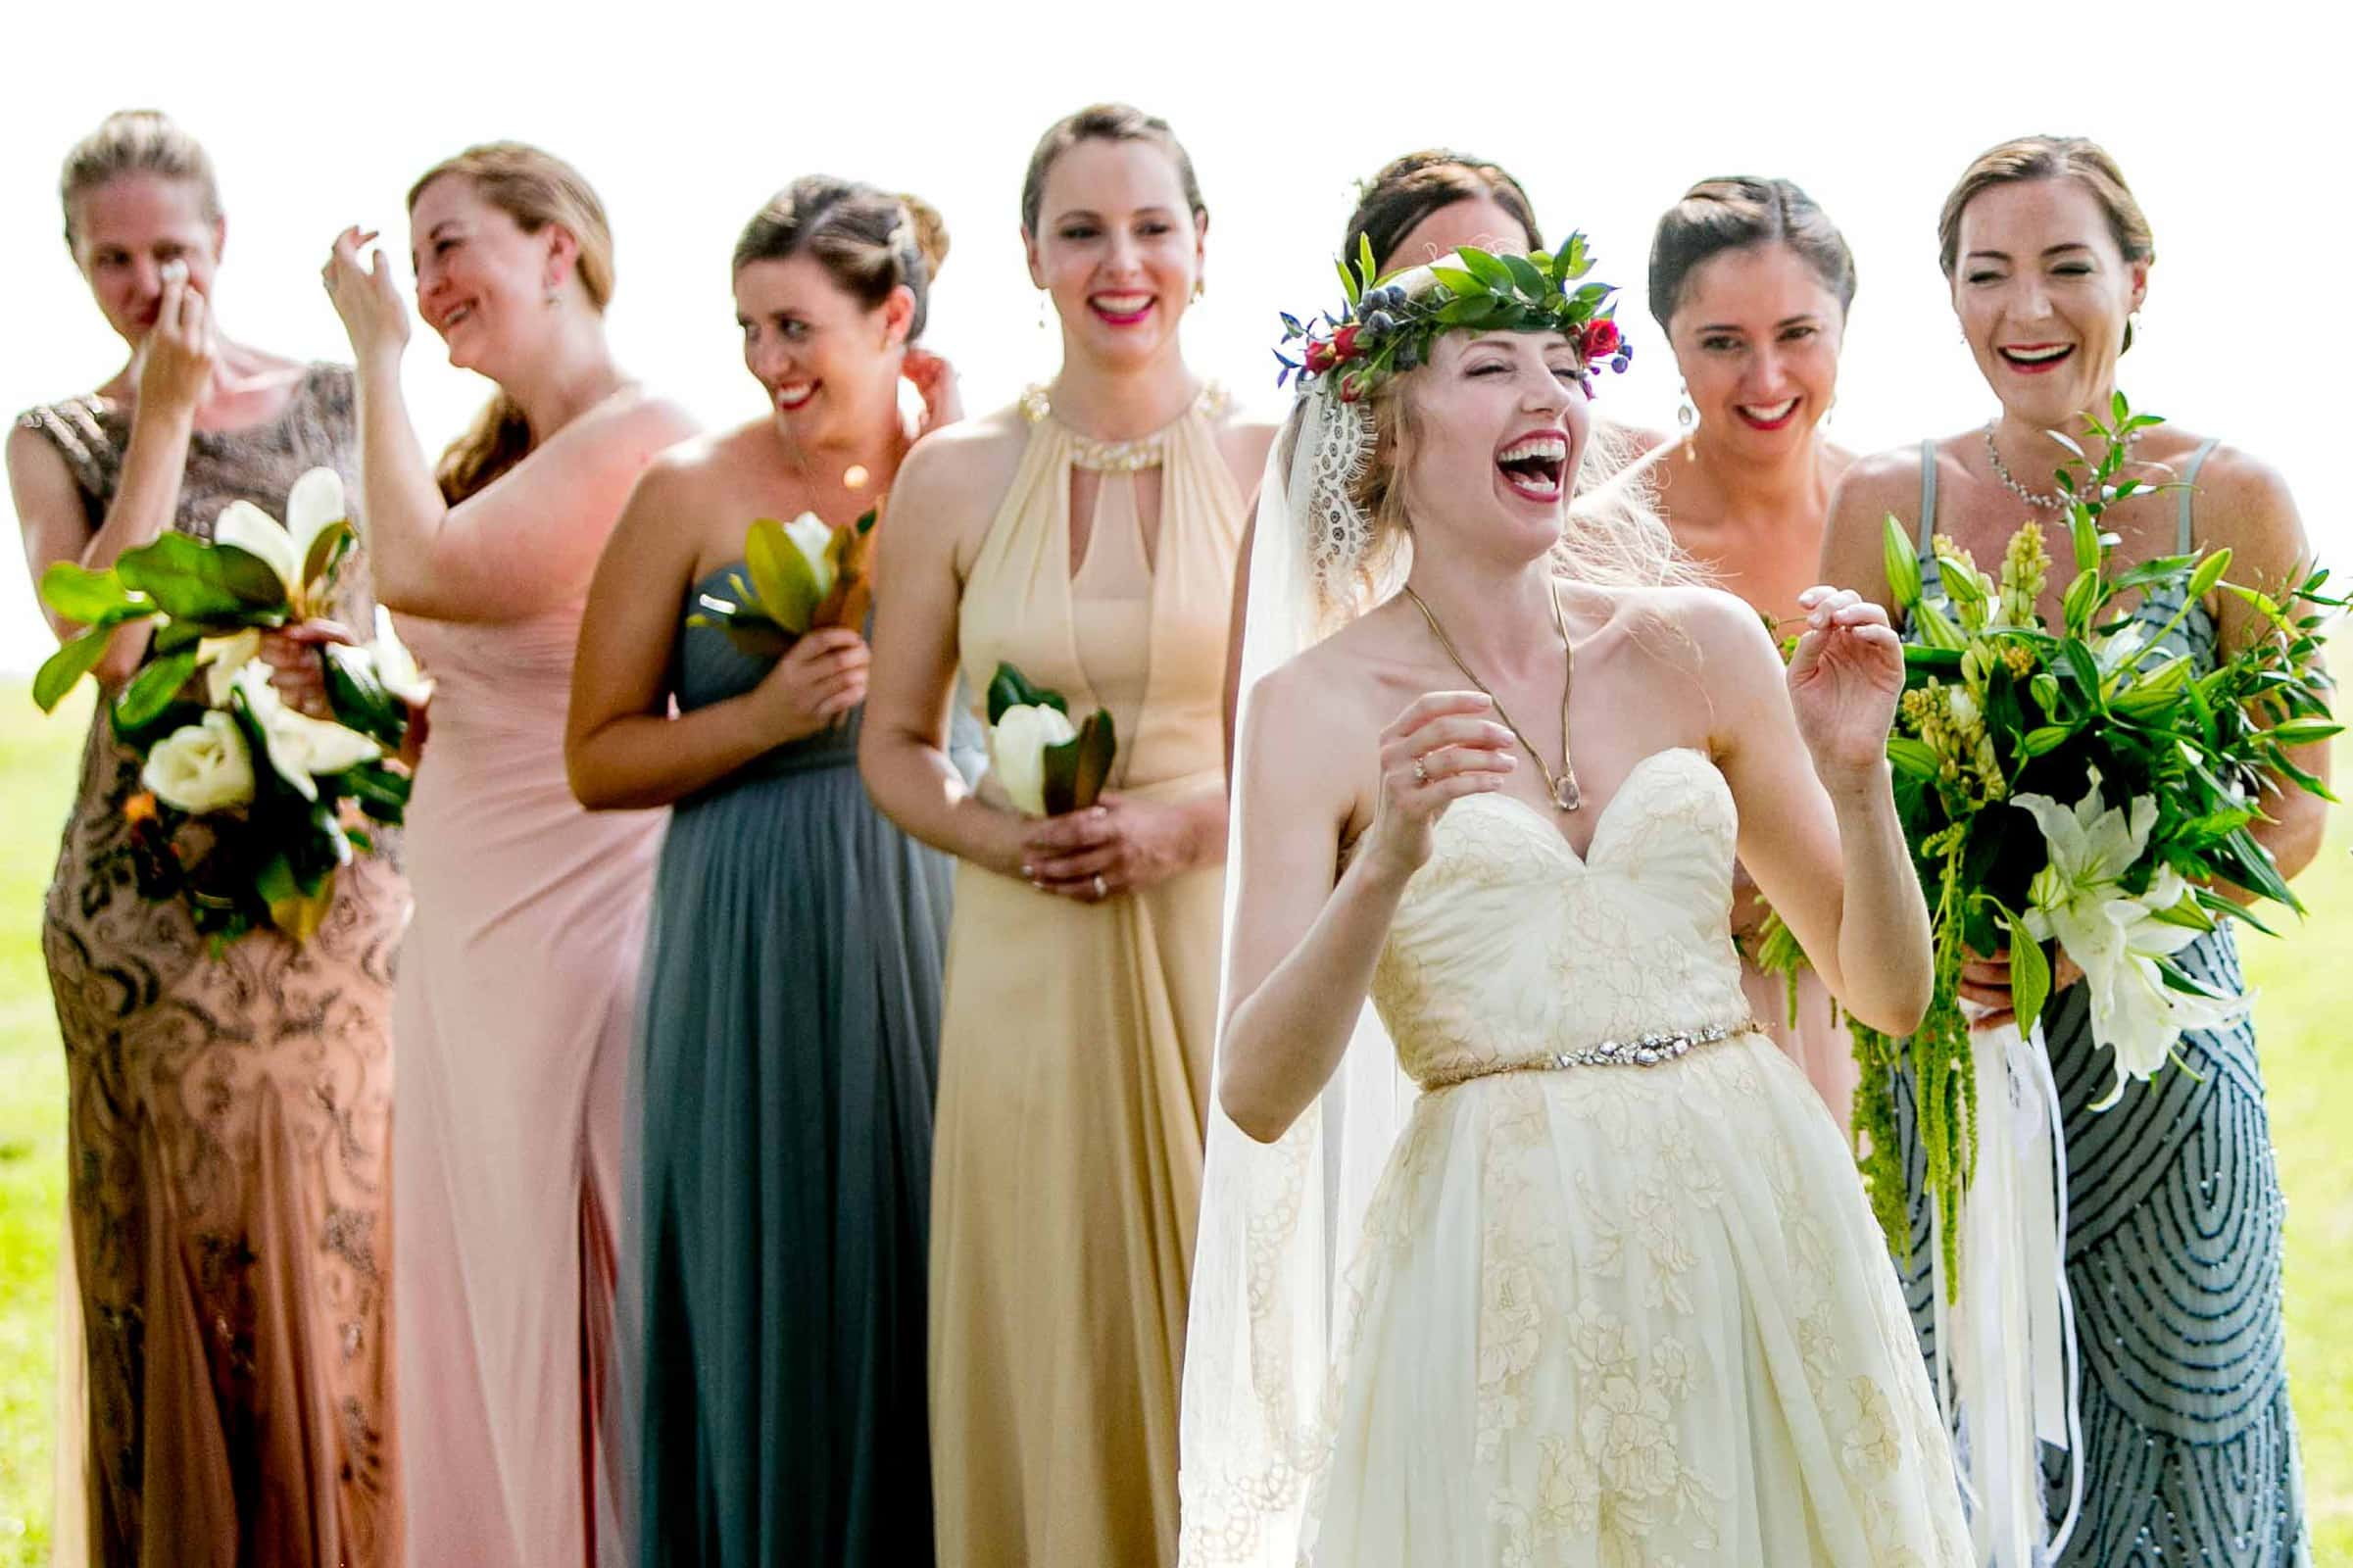 Fun photo of a bride laughing in the ceremony during a Chesapeake Bay wedding in Maryland at Wades Point Inn.